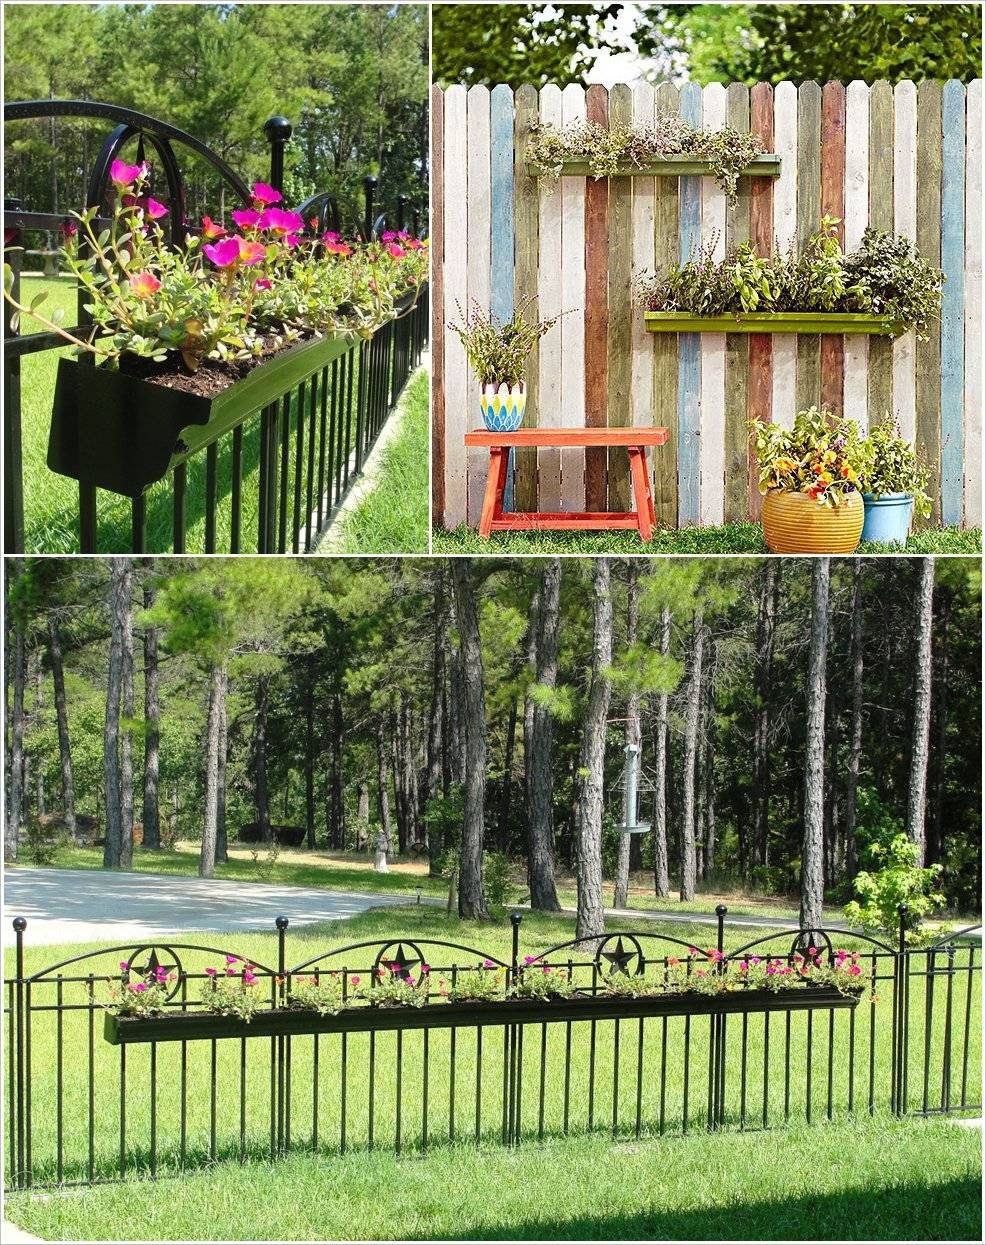 10 ideas para decorar la valla de tu jard n for Carretillas de adorno para jardin